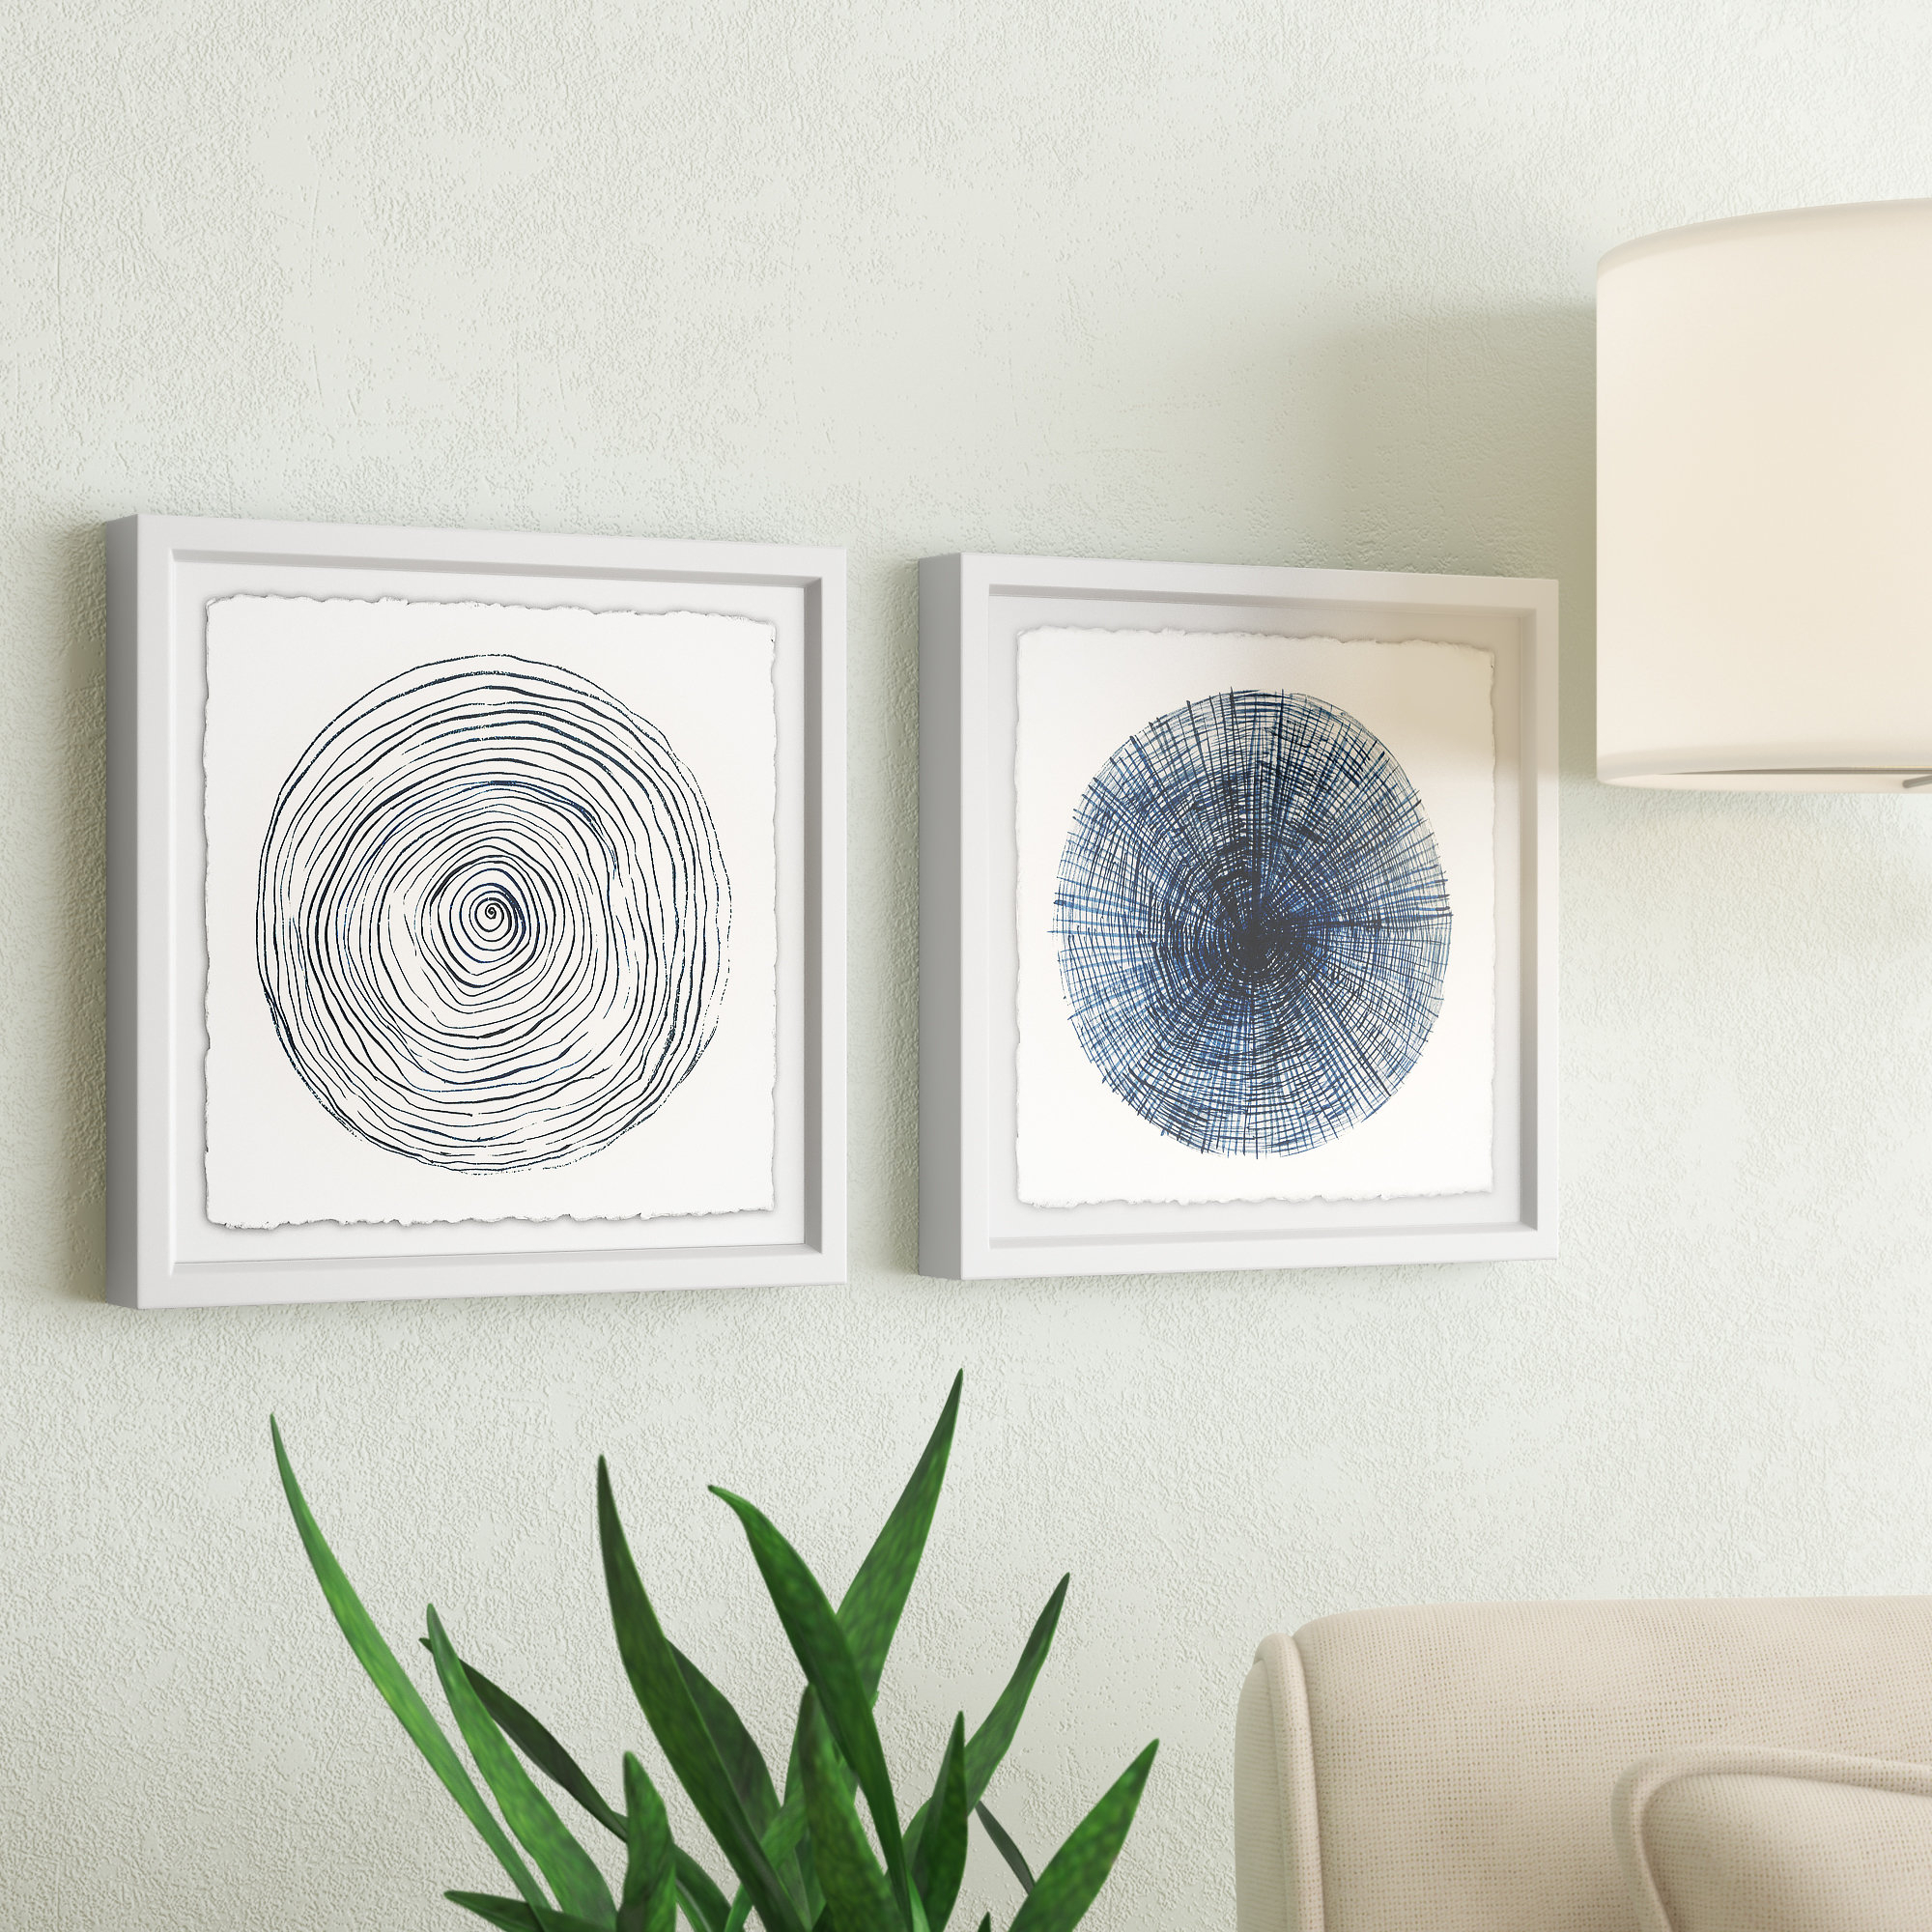 Wrought Studio 'circle Lines Diptych' 2 Piece Framed Drawing Print With Regard To Newest 3 Piece Wall Decor Sets By Wrought Studio (View 19 of 20)